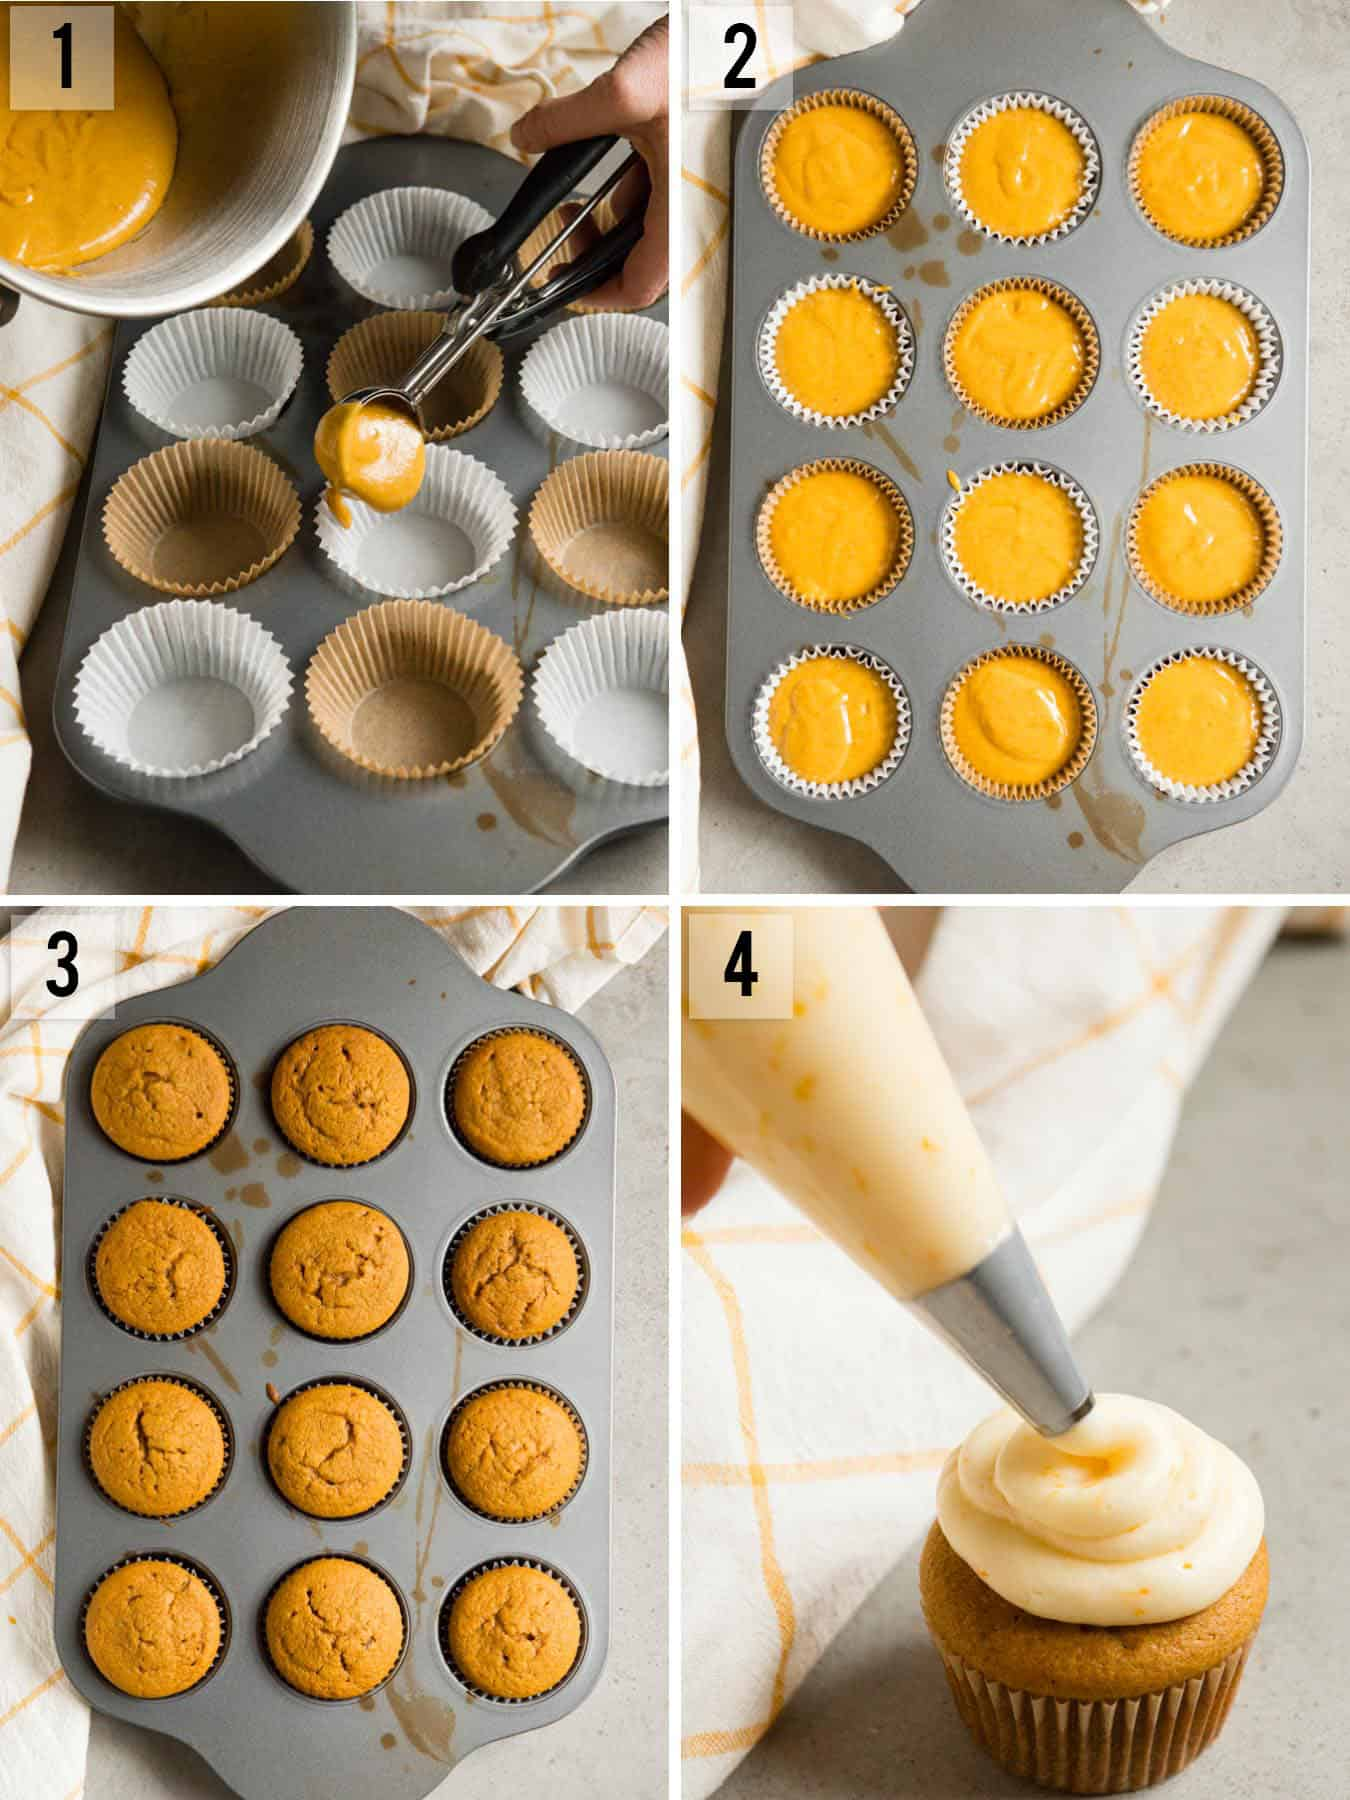 Pumpkin Cupcakes with a Citrus Cream Cheese Frosting process photos